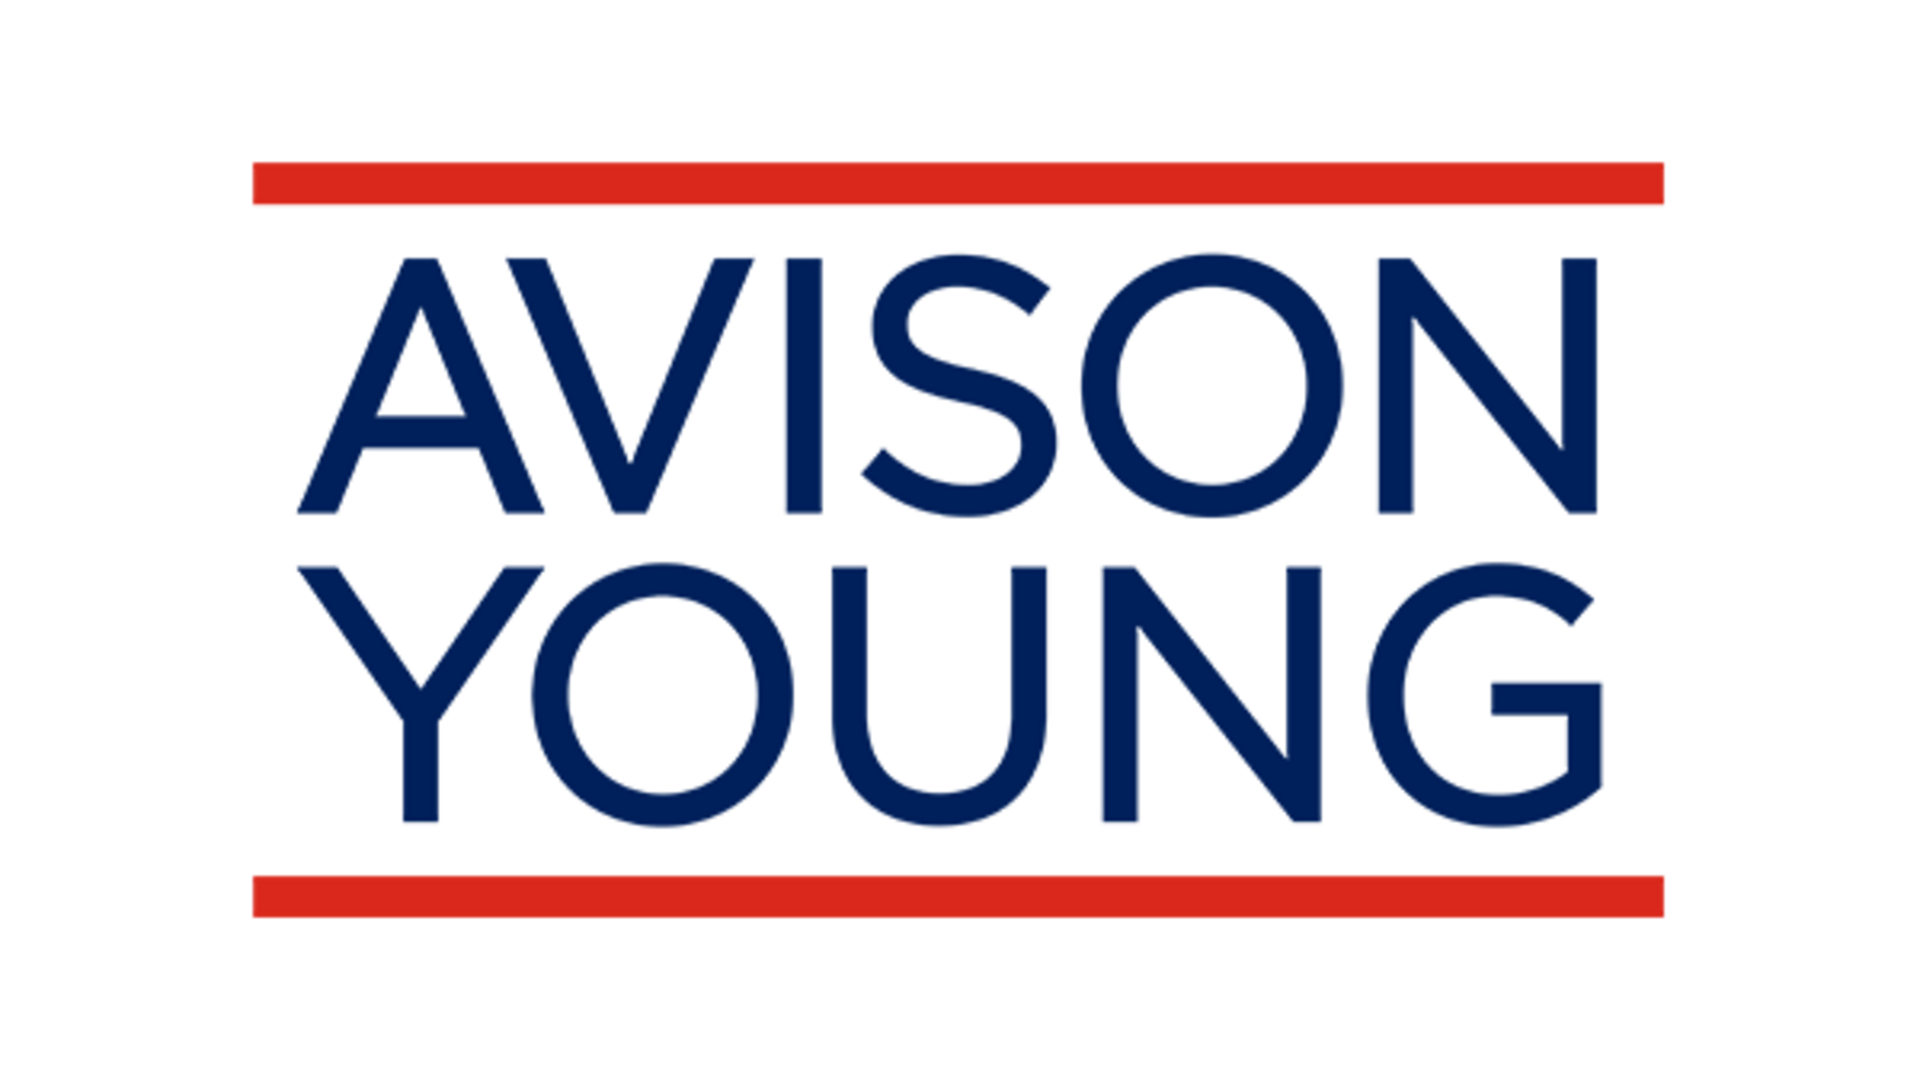 Keynote speech: Avison Young Germany, Bavaria